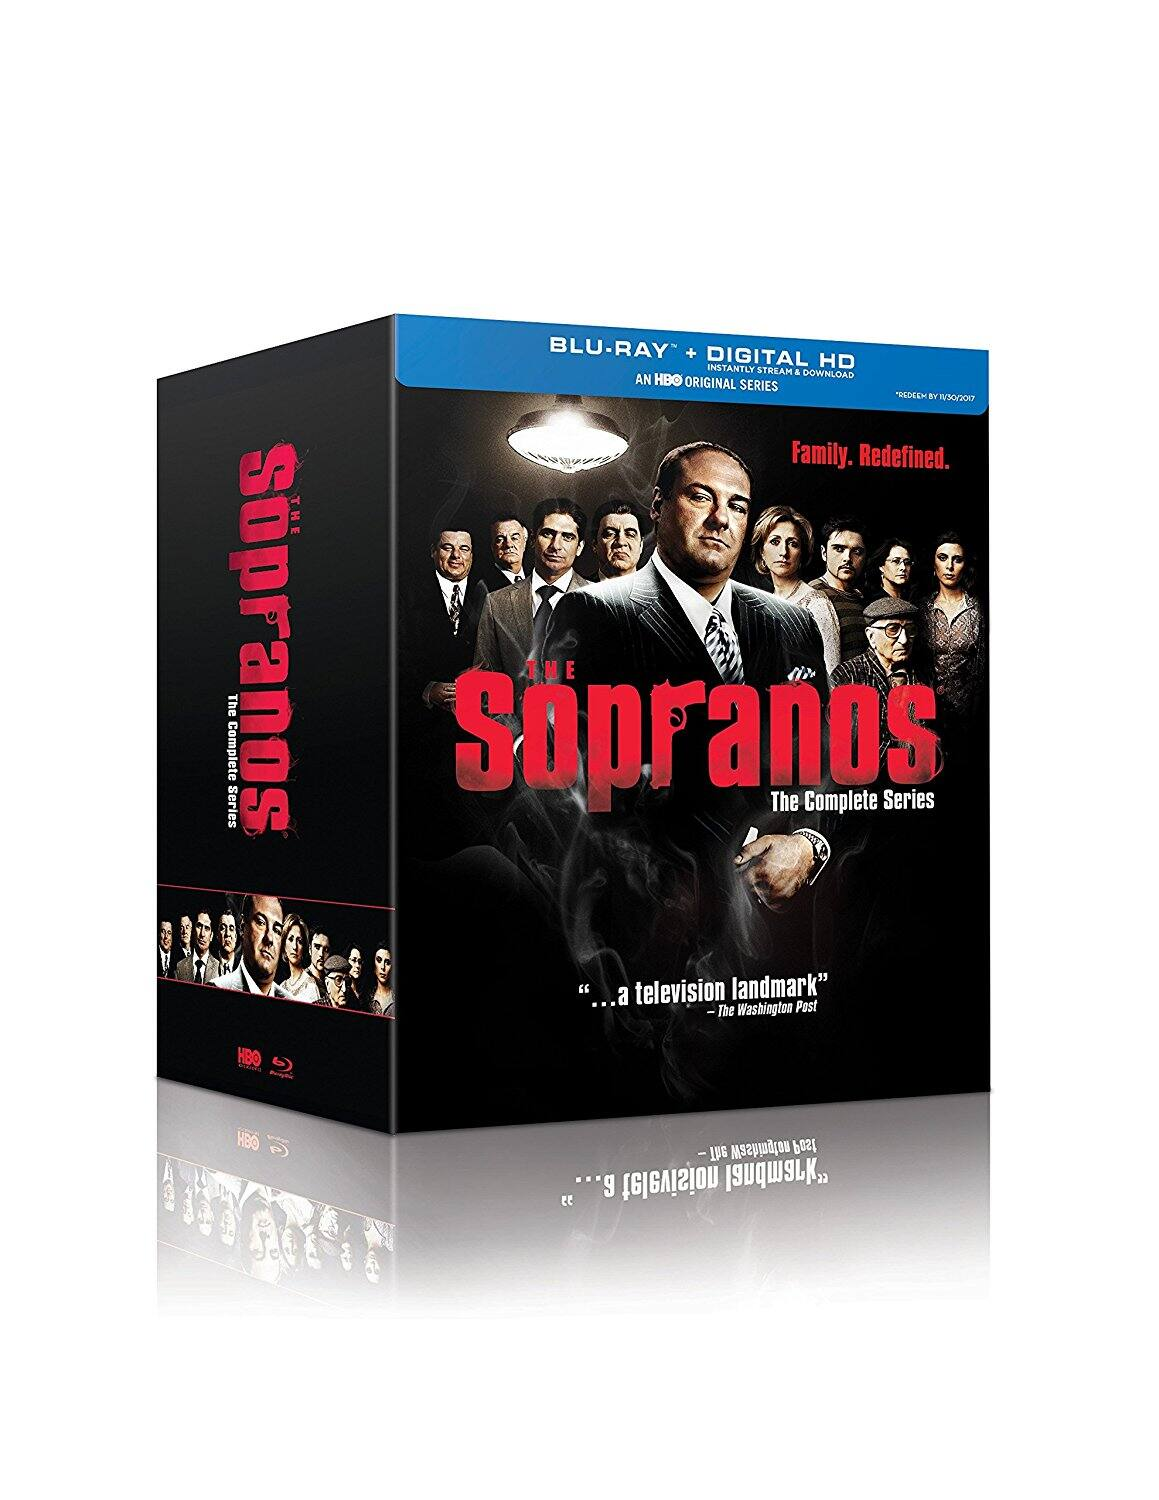 The Sopranos: The complete series $49.99